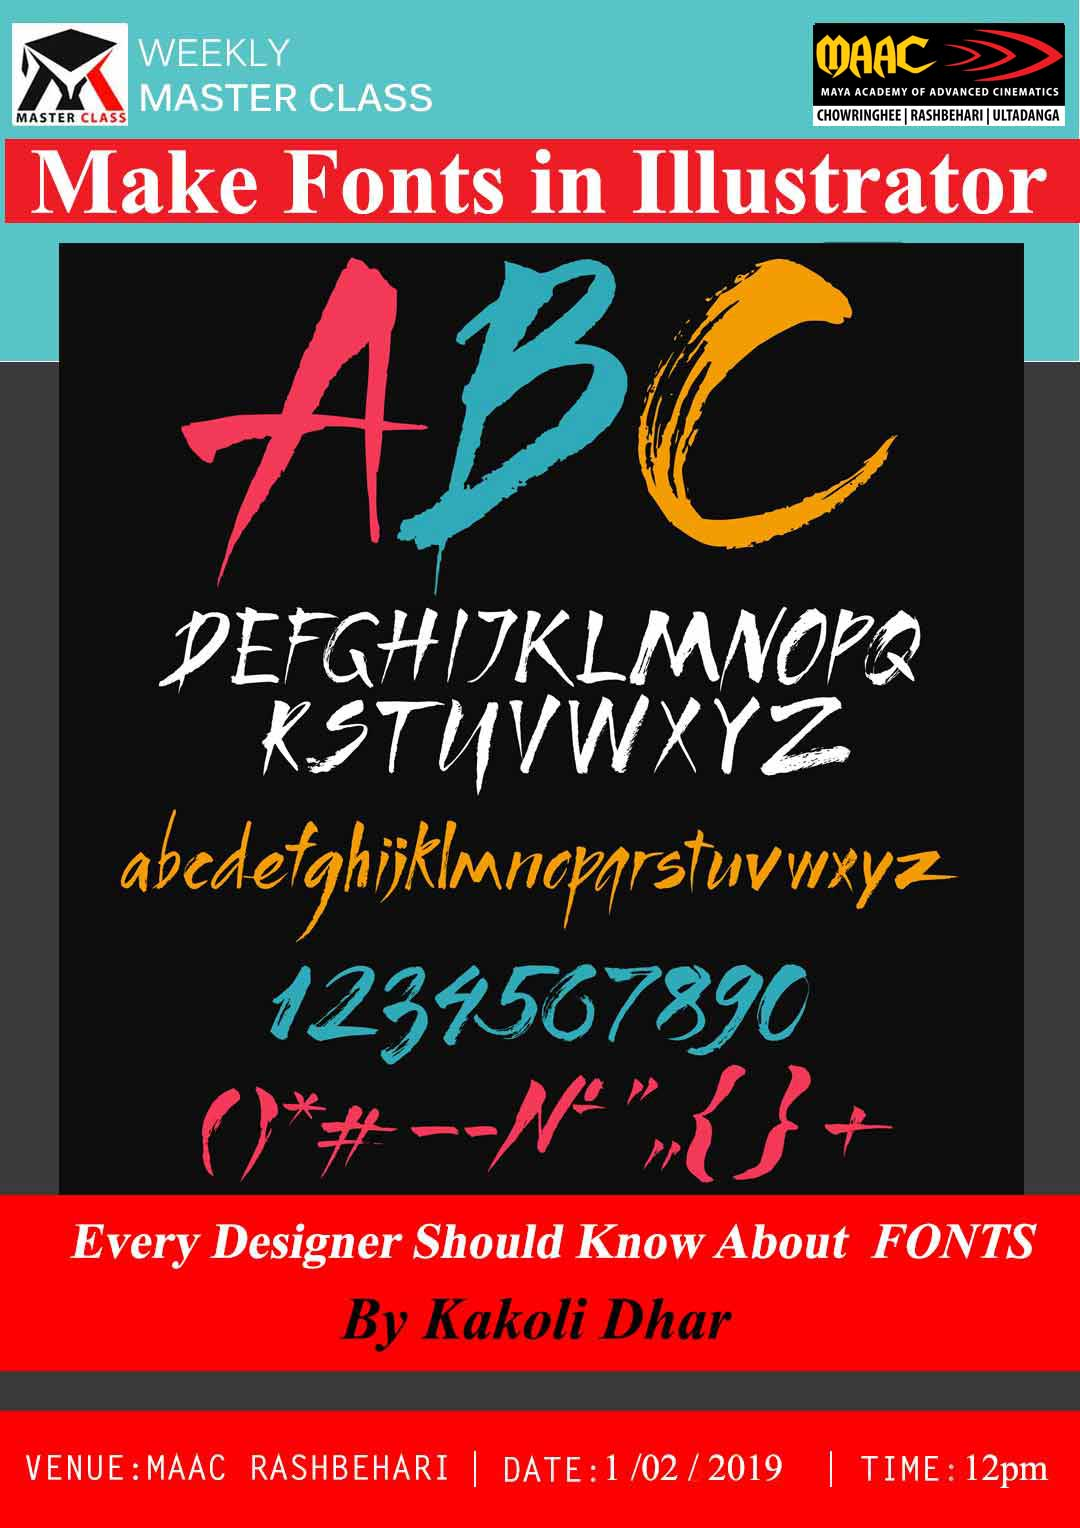 Weekly Master Class on Make Fonts in Illustrator